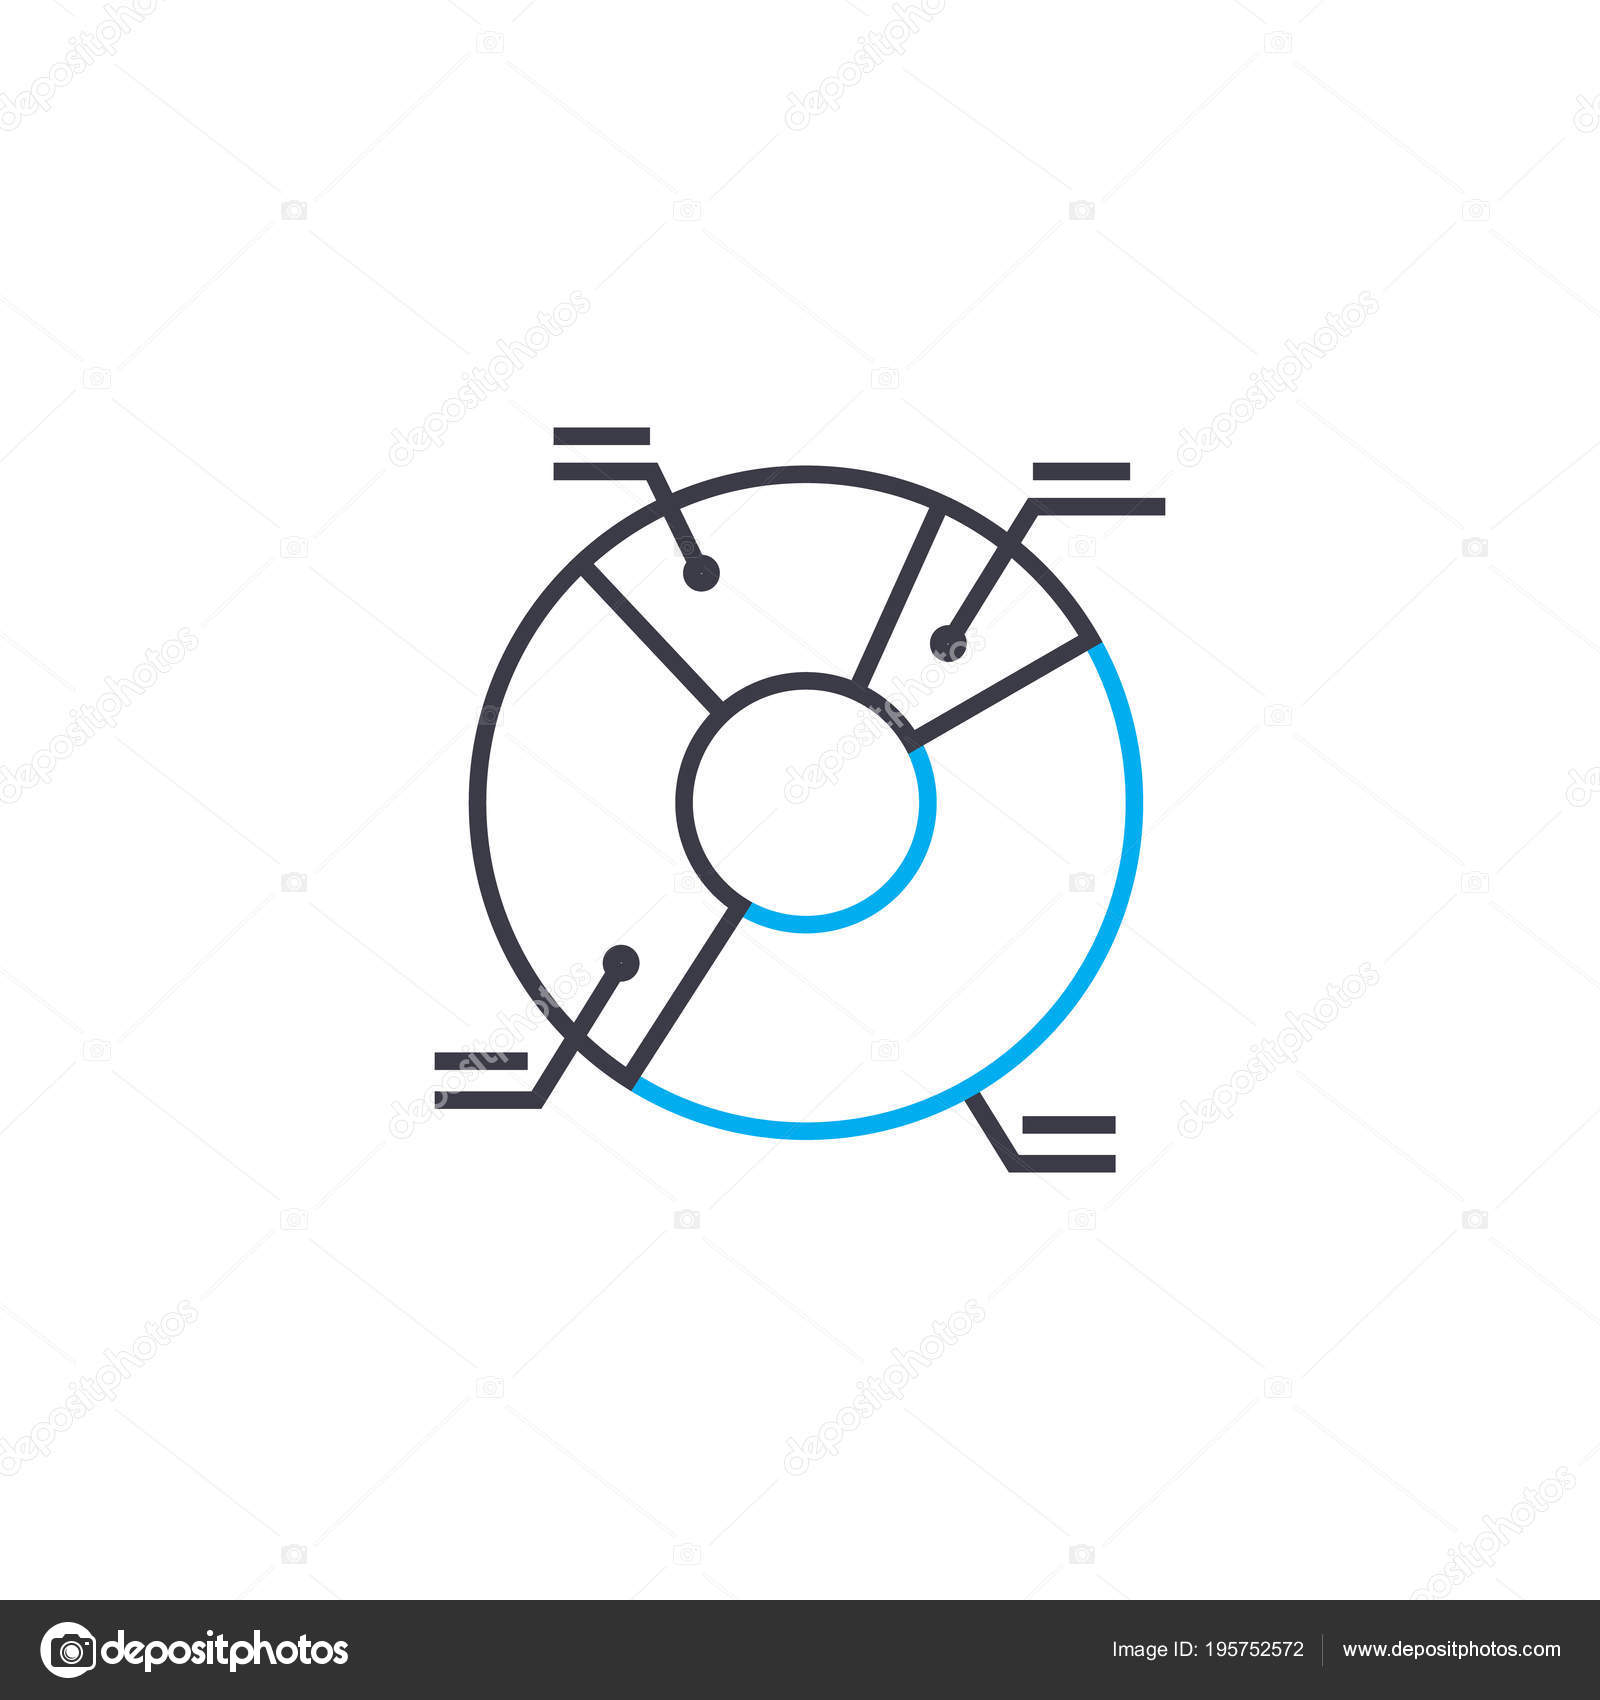 legend of the diagram vector thin line stroke icon  legend of the diagram  outline illustration